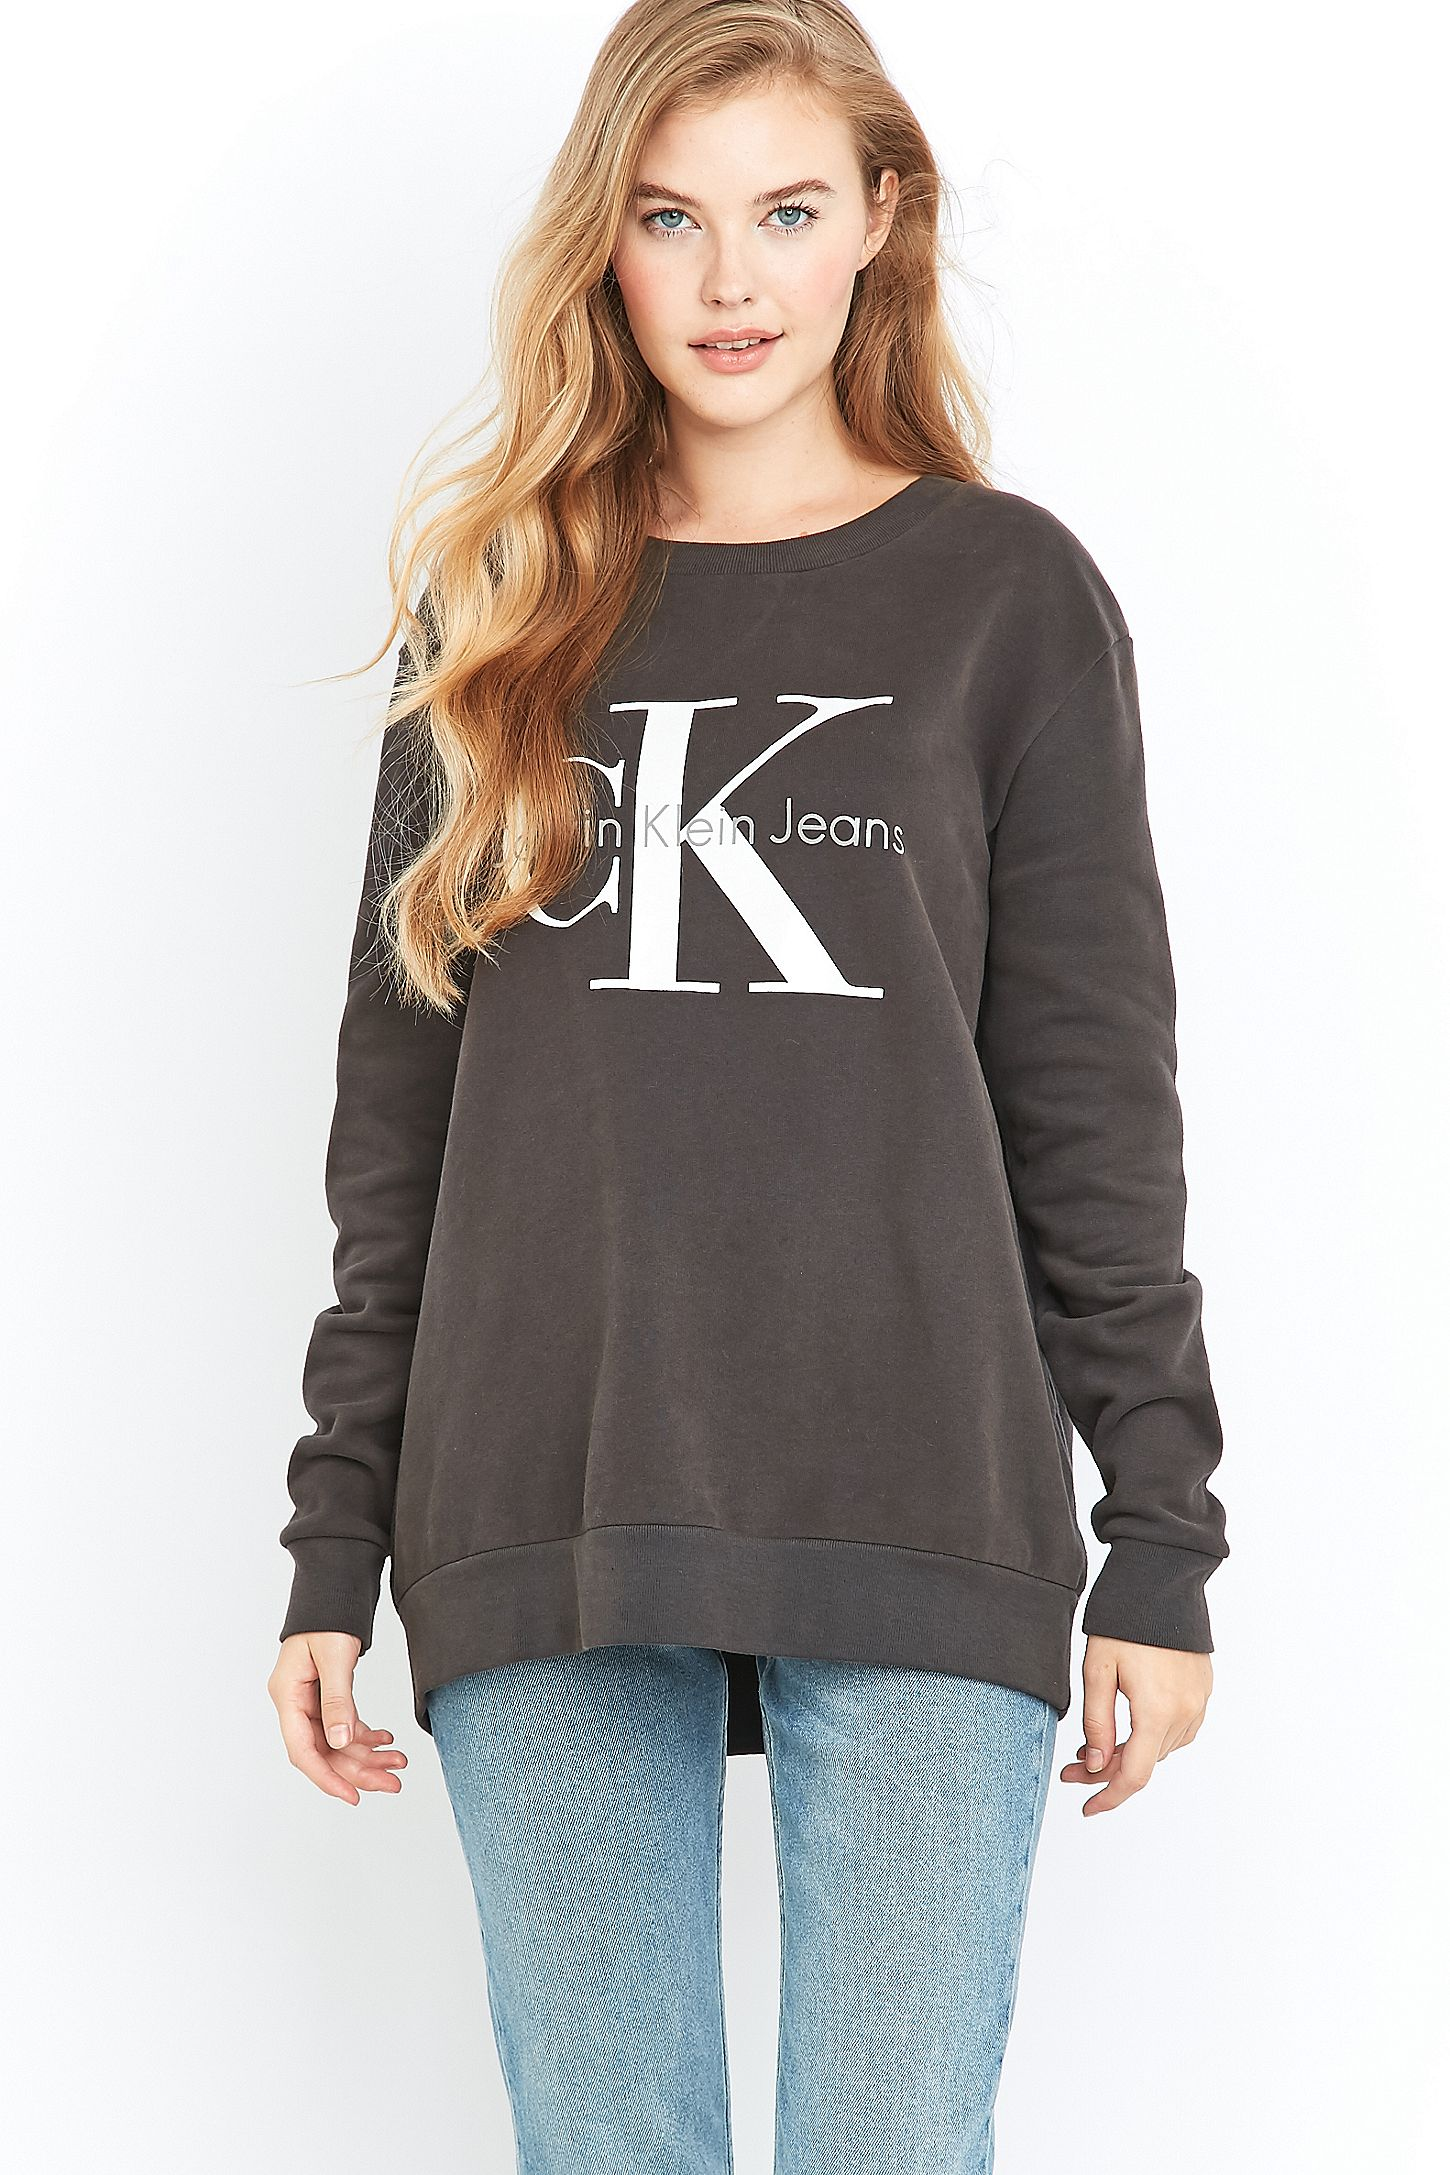 2c9fa0dae15 Calvin Klein Jeans Black Logo Sweatshirt. Click on image to zoom. Hover to  zoom. Double Tap to Zoom